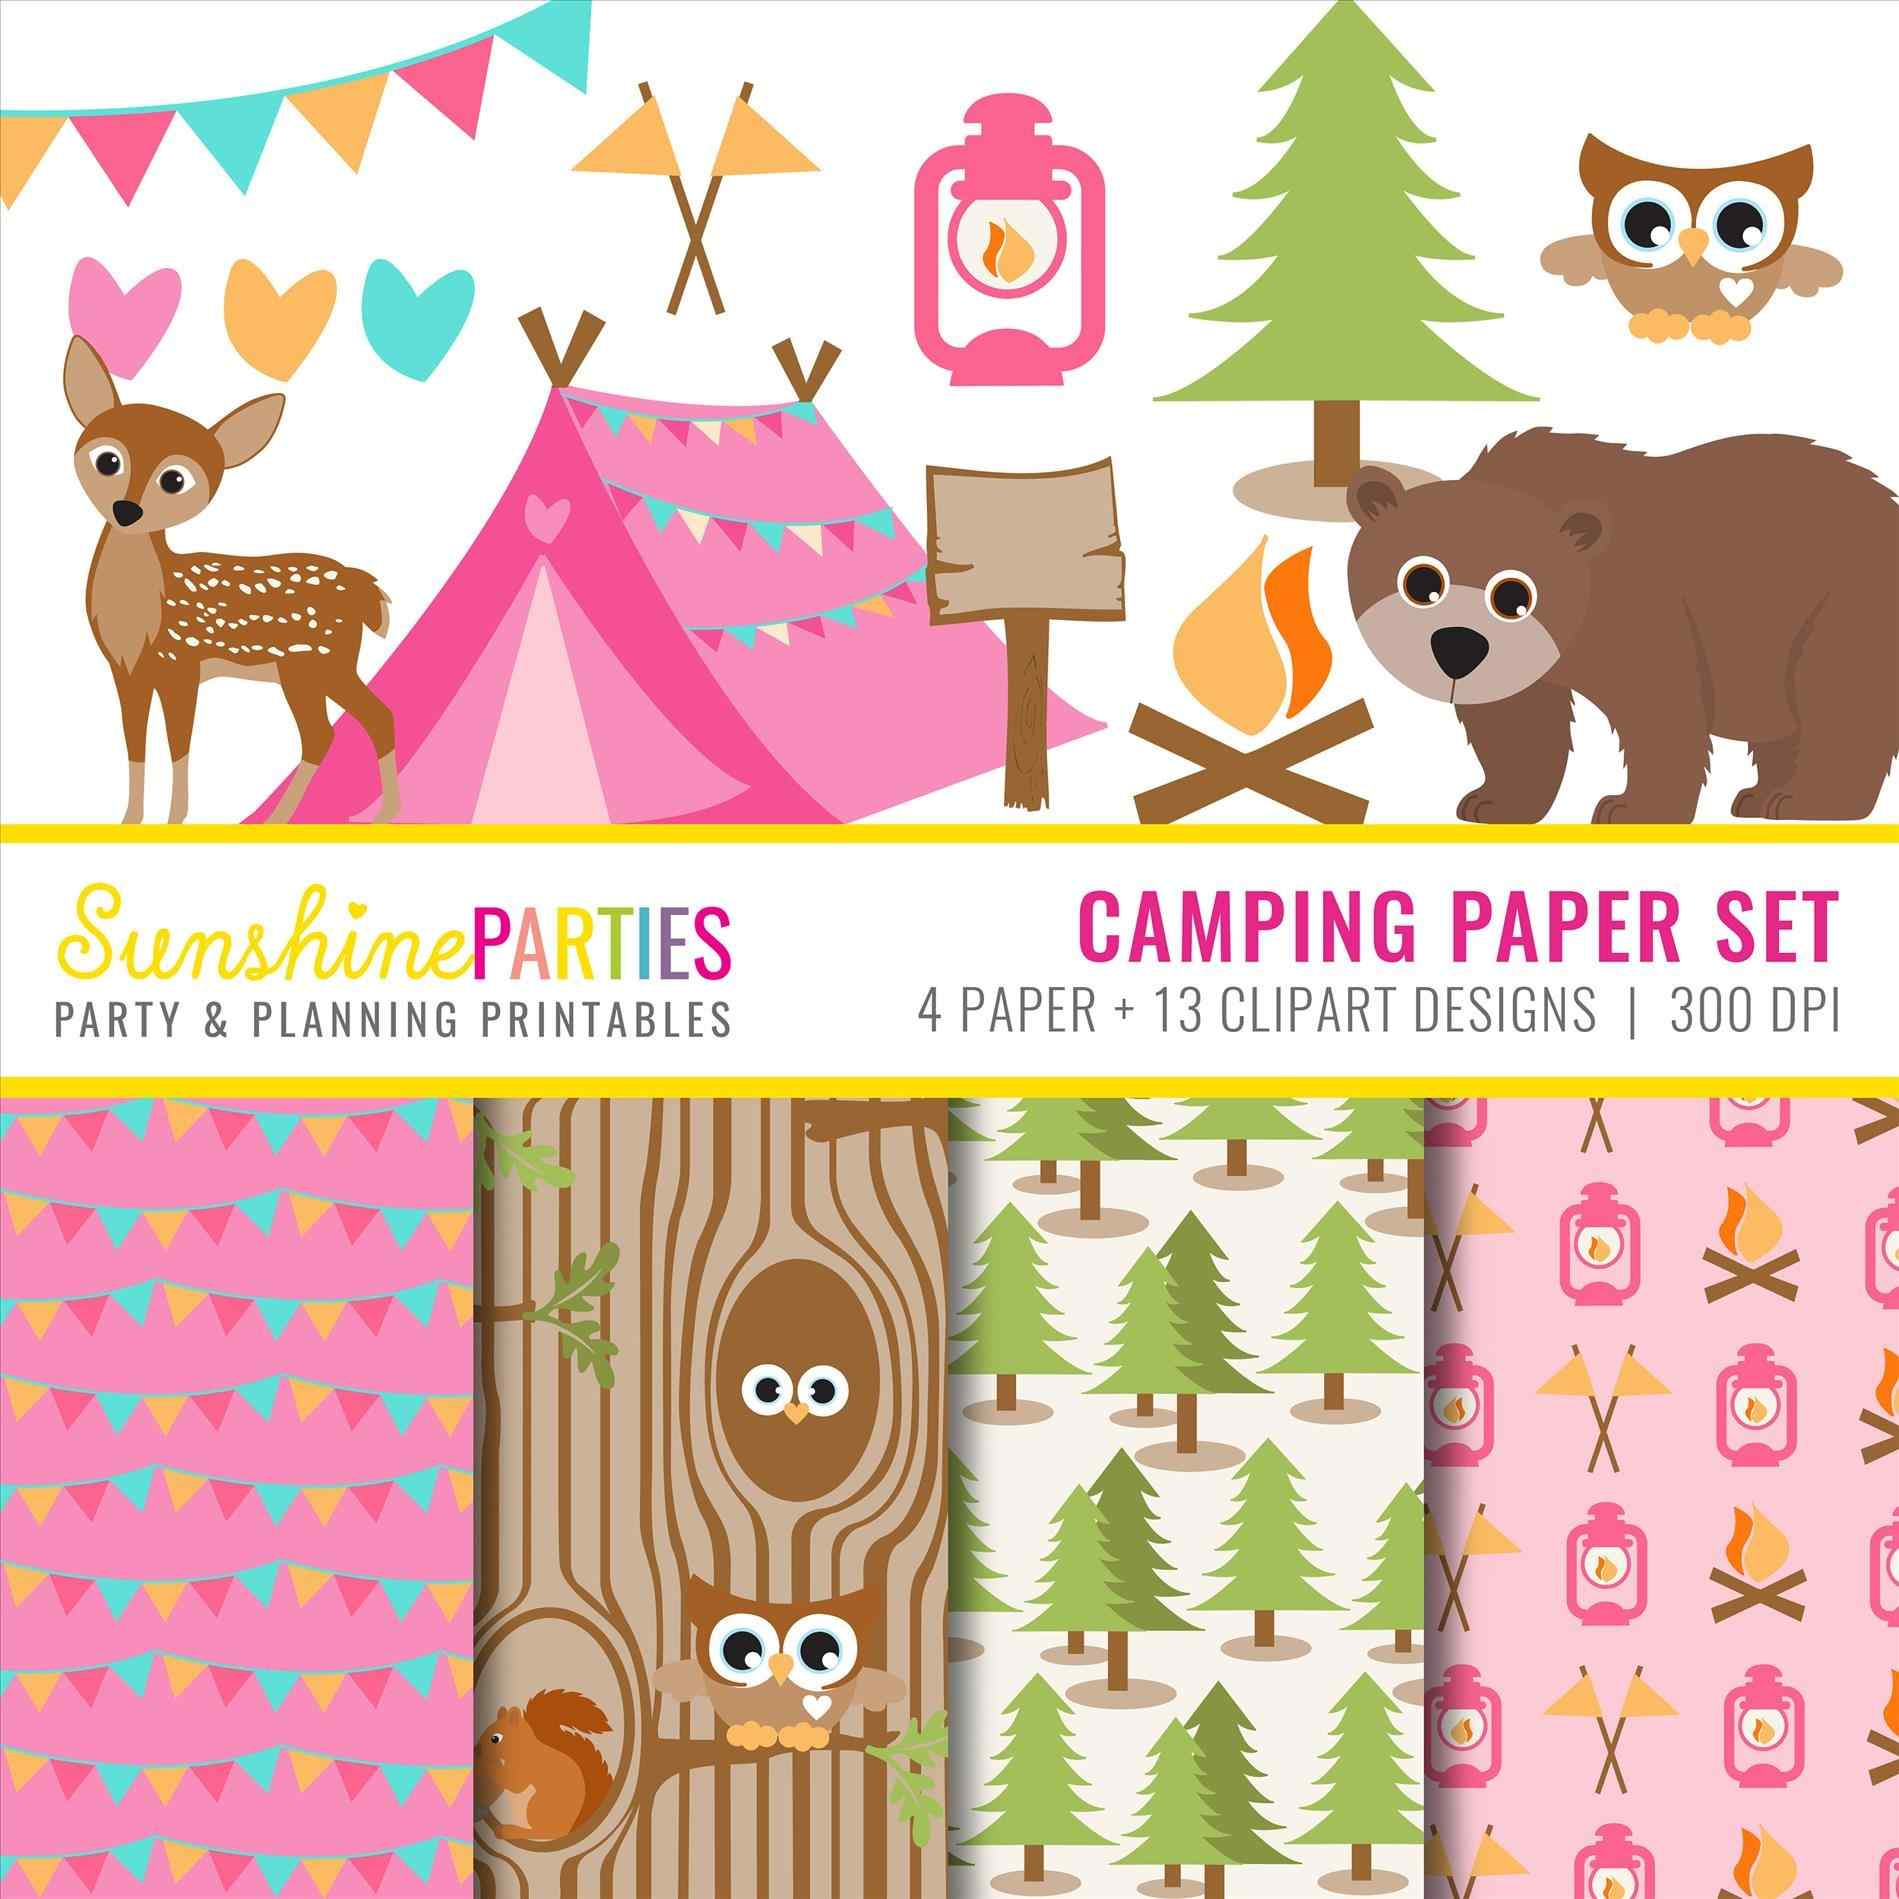 Camping items tentco win. Campfire clipart party